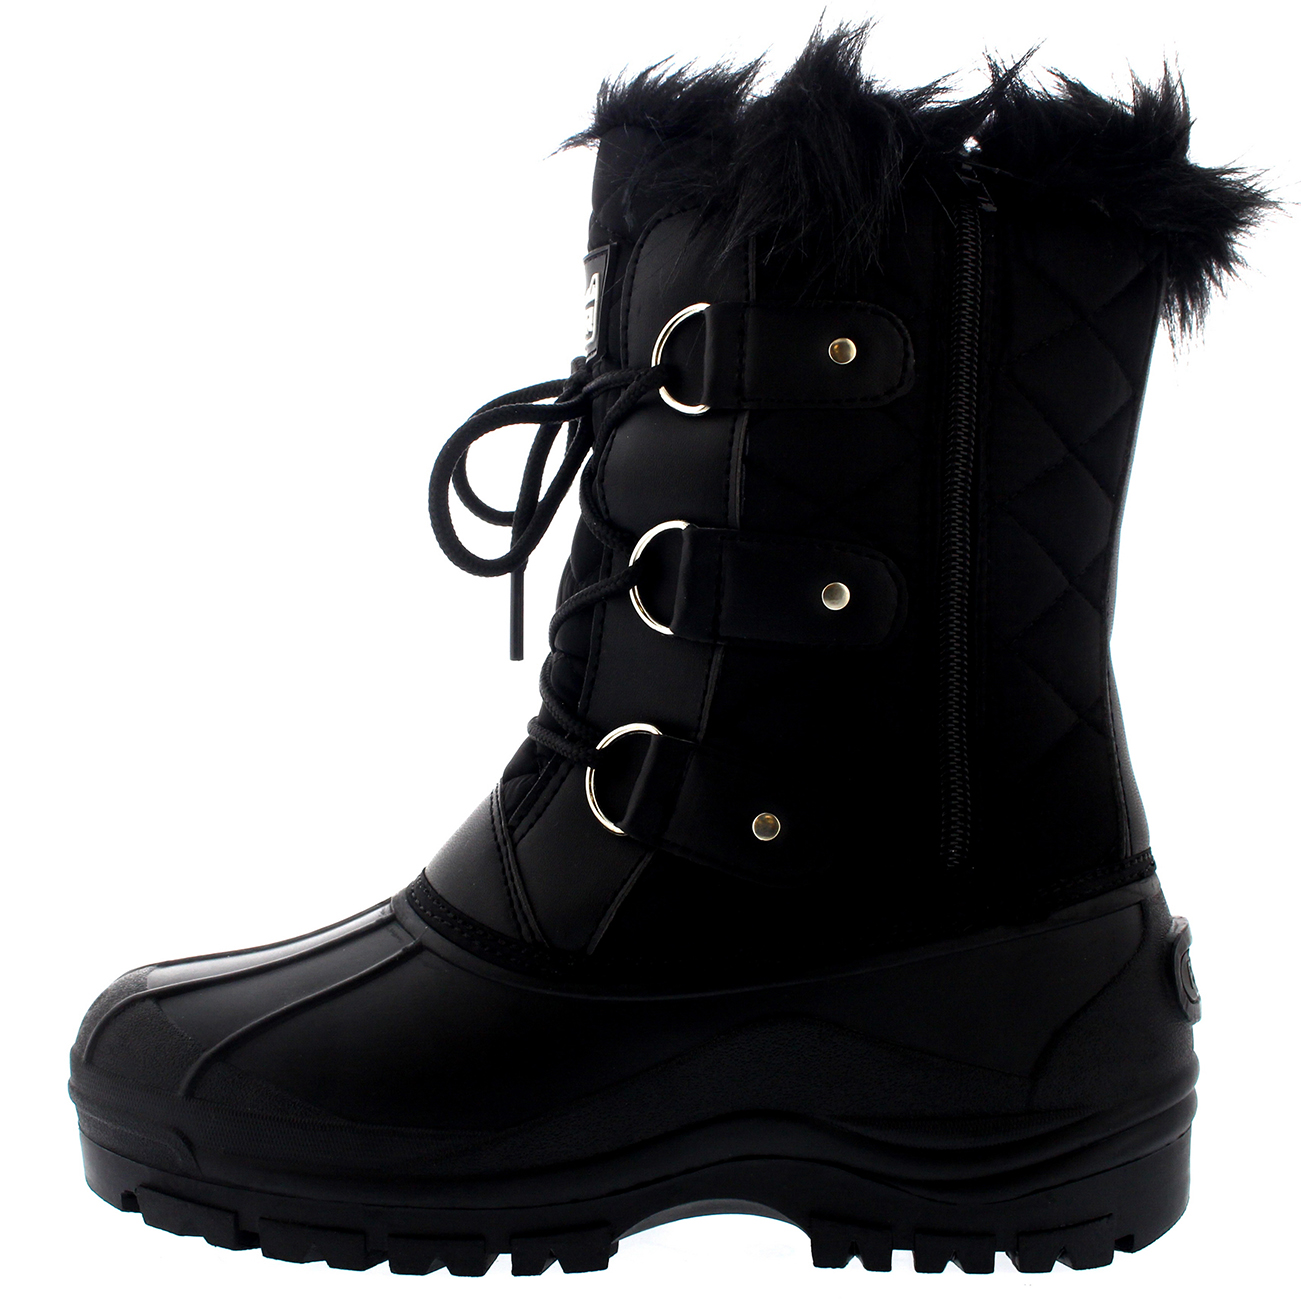 e00a4a9cc6c Details about Womens Mid Calf Mountain Fur Lined Walking Tactical  Waterproof Boots US 5-12